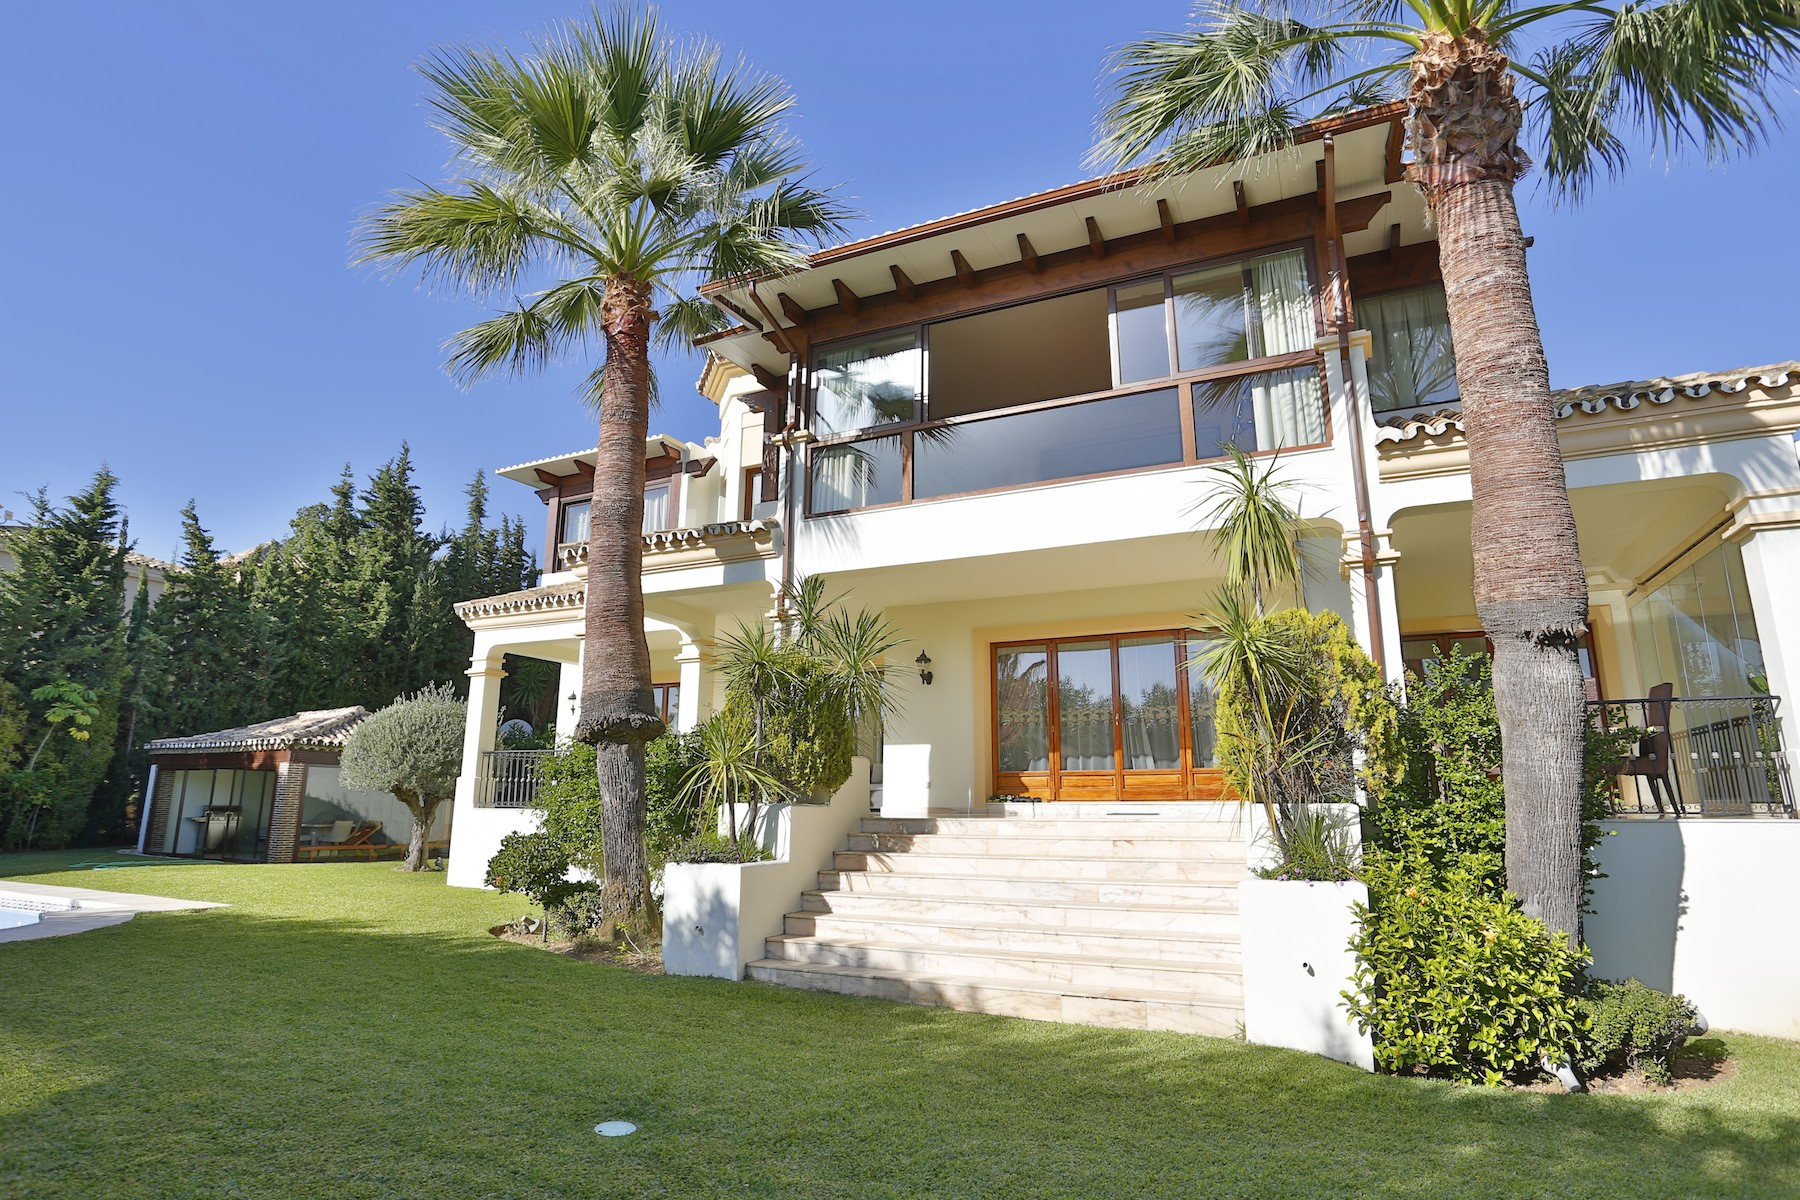 一戸建て のために 売買 アット Elegant villa situated in the best sought after residential area in Marbella Sierra Blanca Marbella, Costa Del Sol, 29600 スペイン